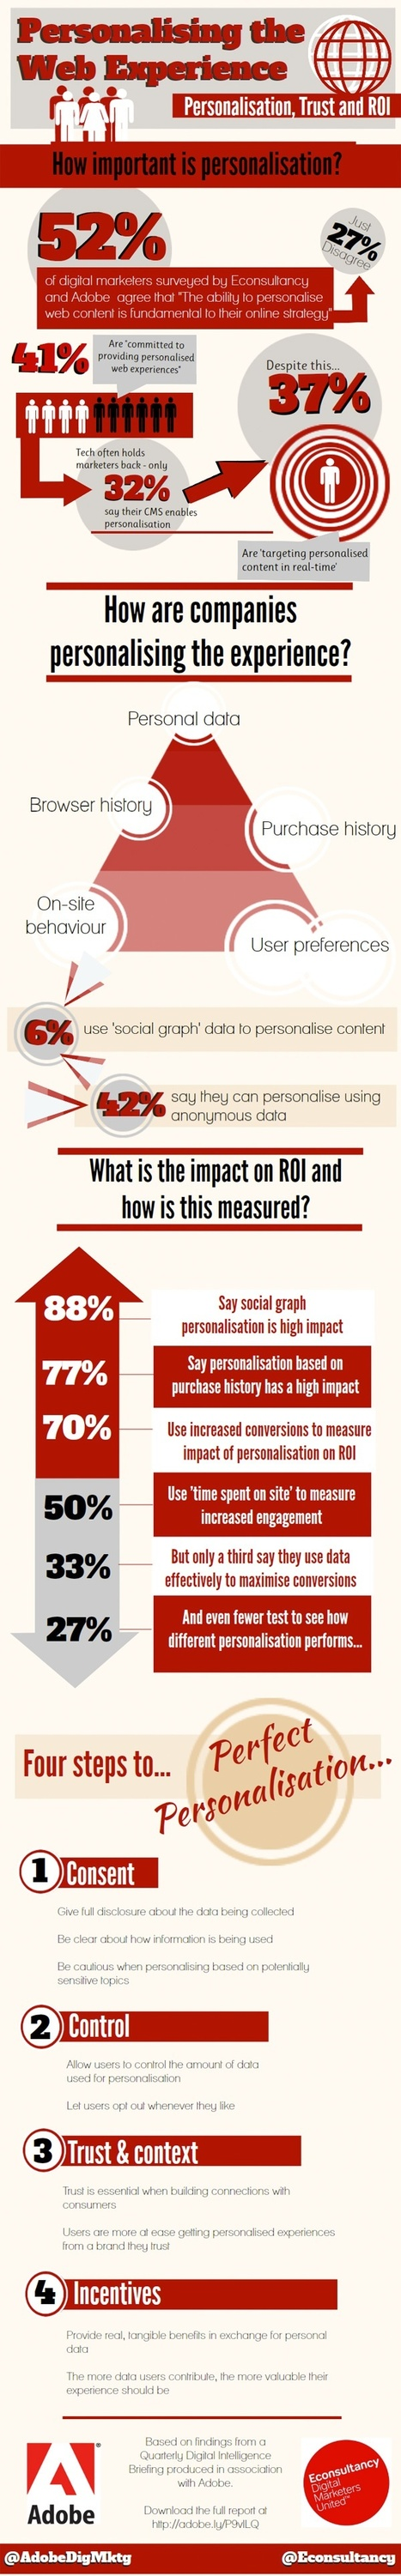 How Important Is Web Personalization? #Infographic | digital marketing strategy | Scoop.it